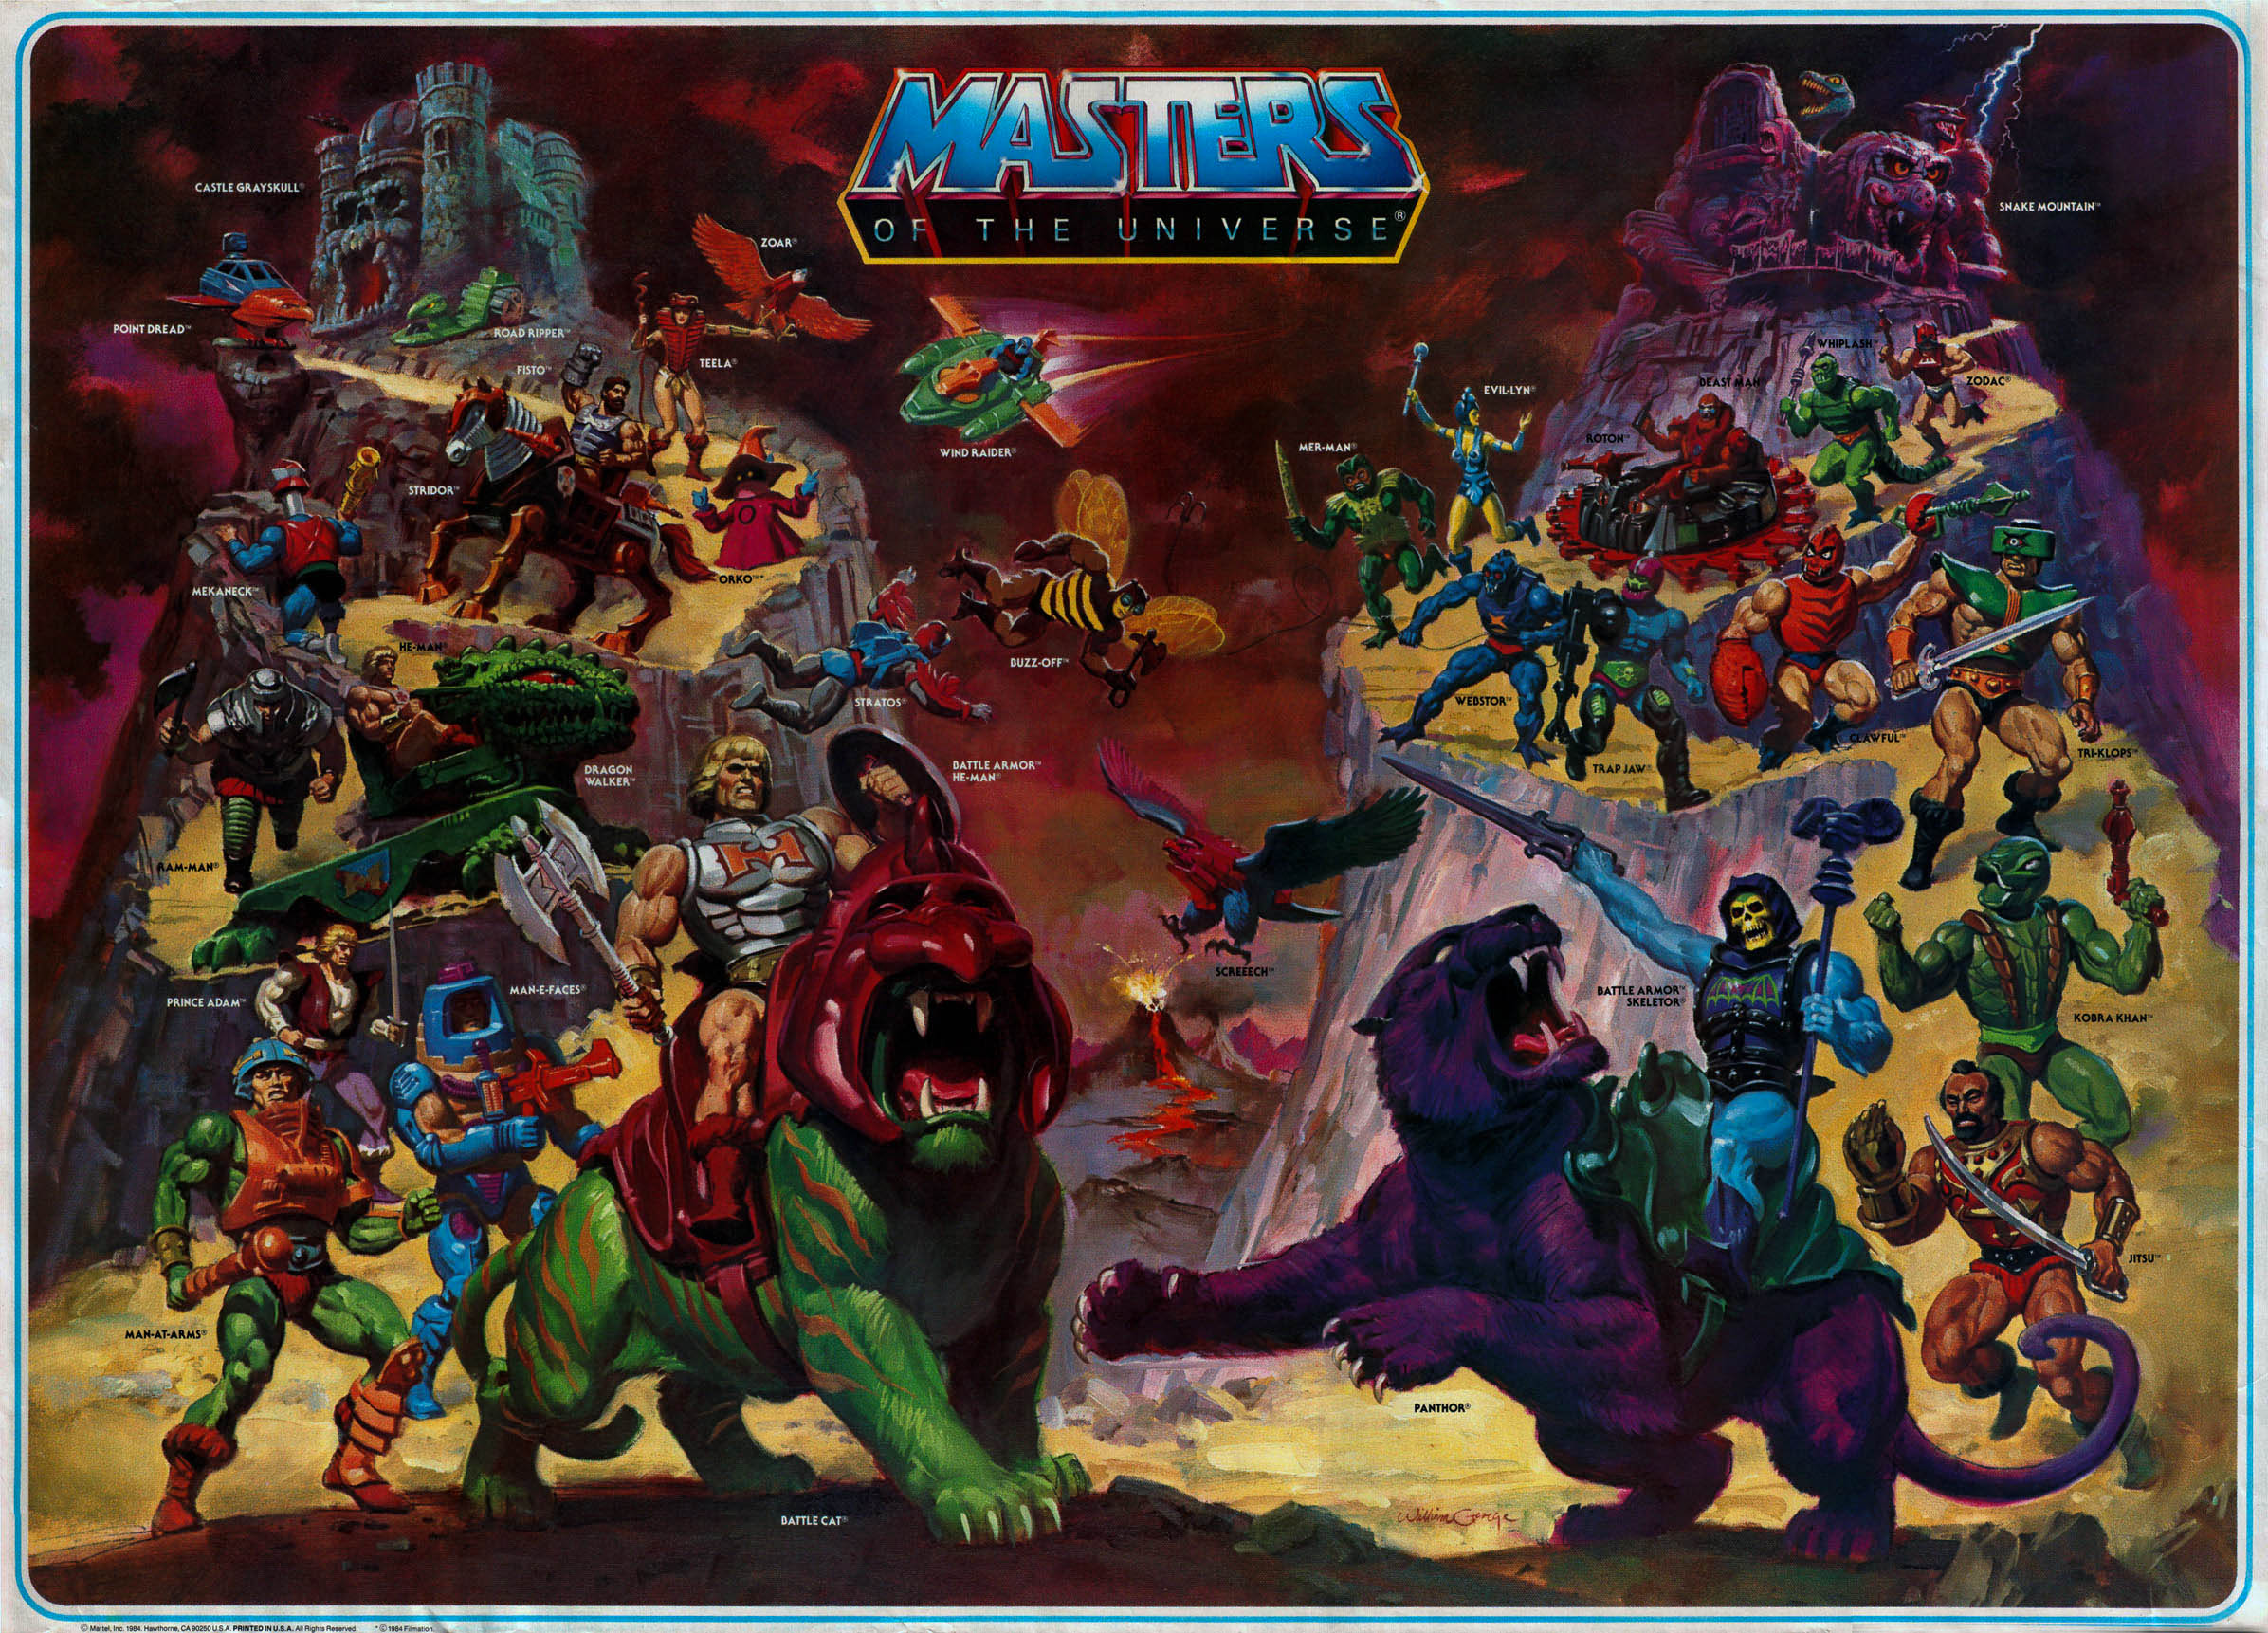 98 Masters Of The Universe Wallpapers On Wallpapersafari